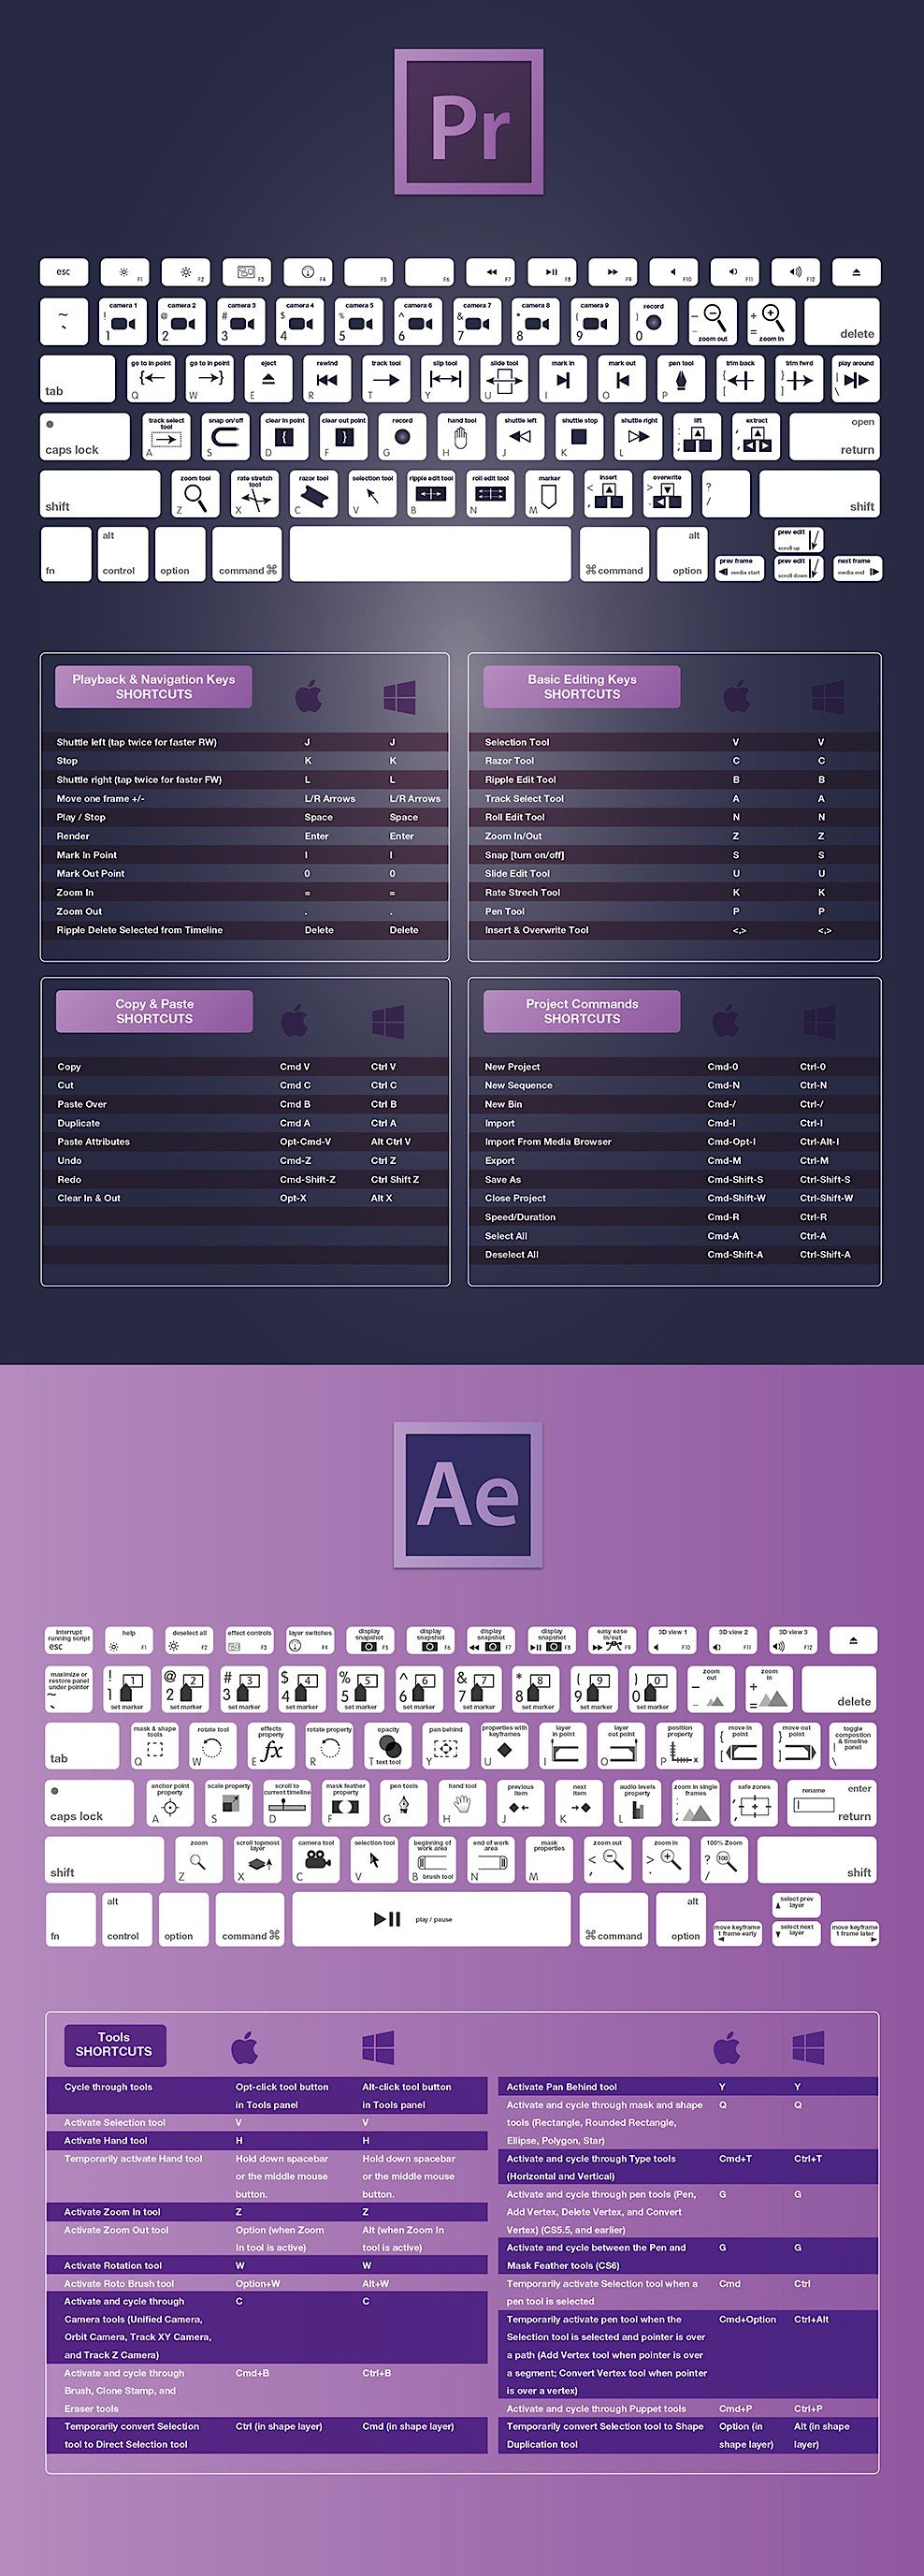 Every Keyboard Shortcut That You Will Ever Need for Premiere